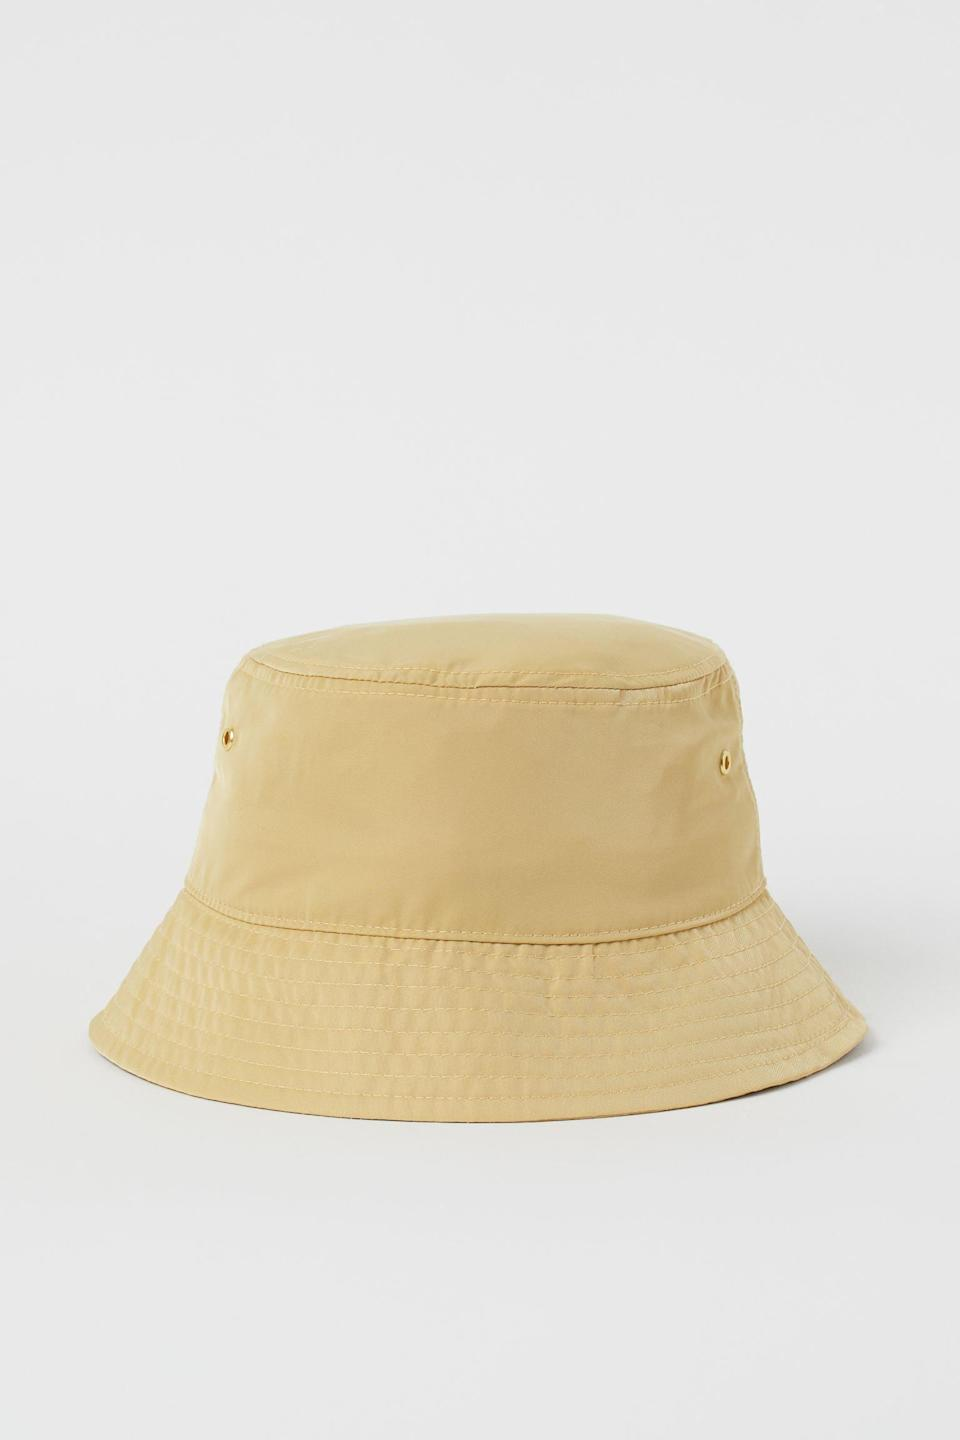 <p>This <span>H&amp;M Bucket Hat</span> ($13) pops in a subtle yet uplifting hue.</p>